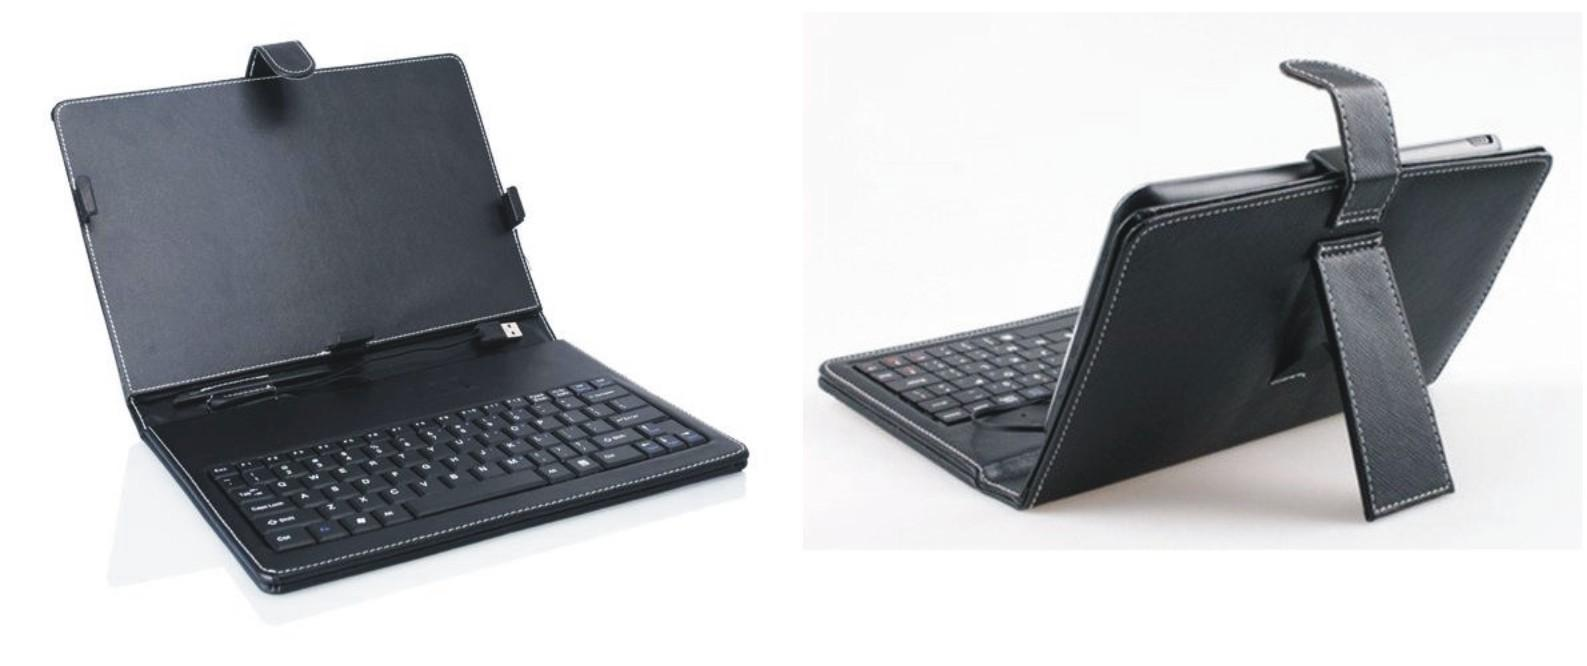 review wireless keyboard and mouse ergonomics